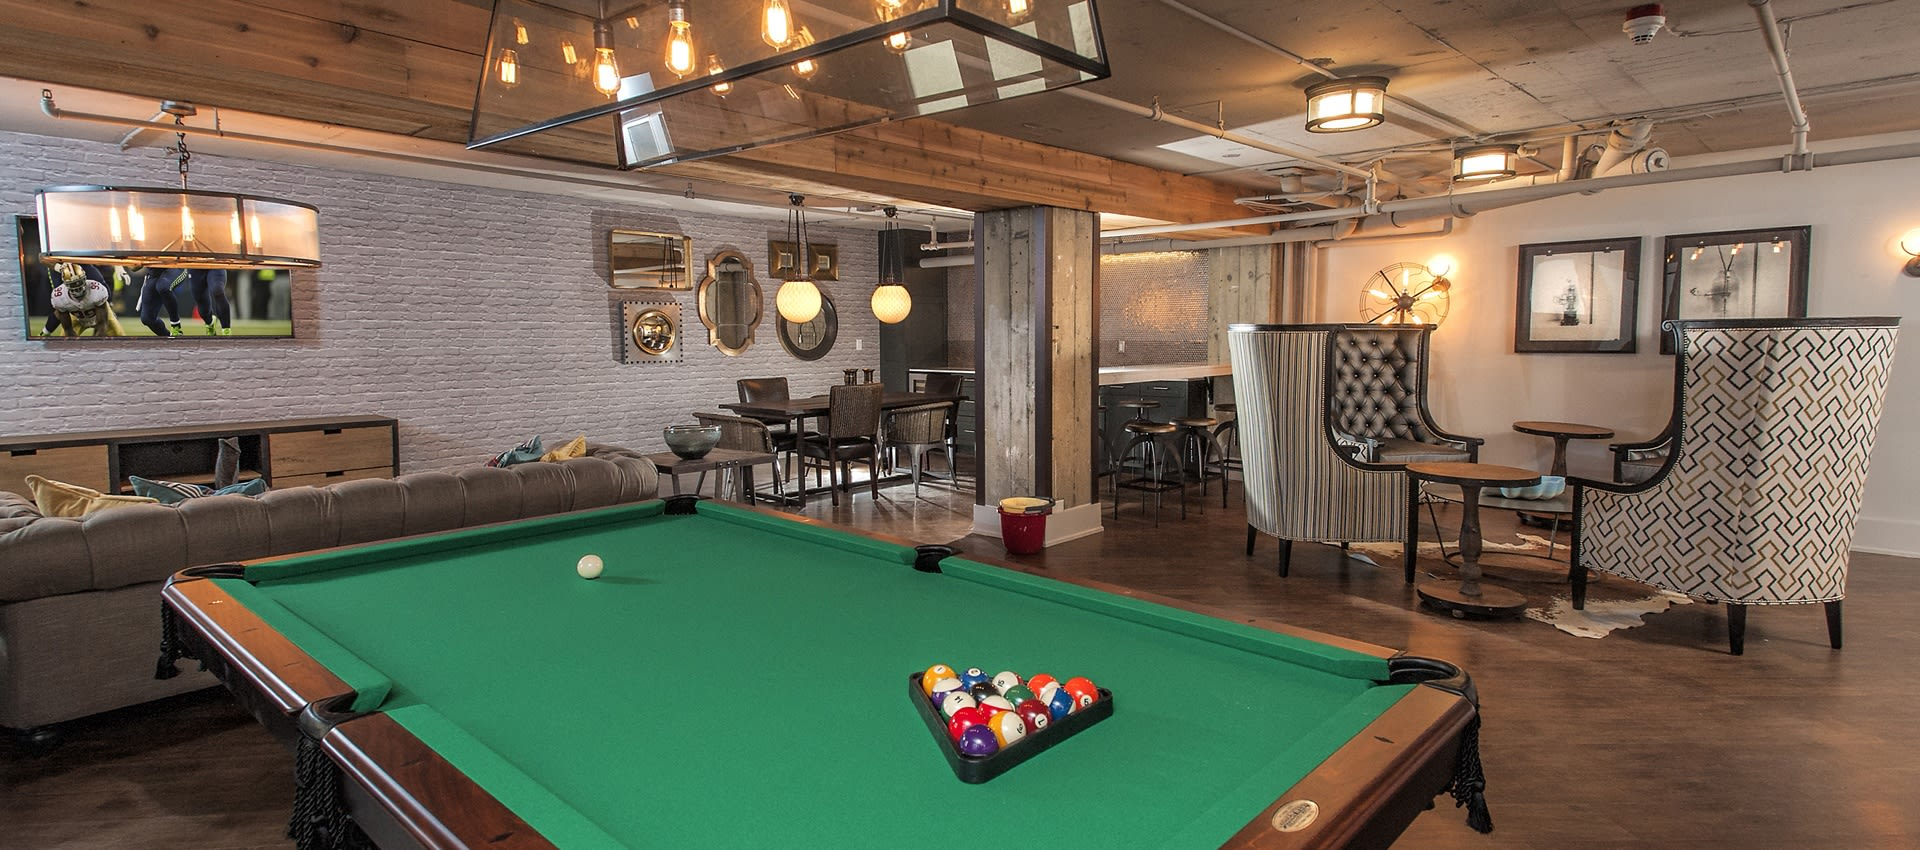 Billiards room at lThe Mill at First Hill's club room in Seattle, Washington